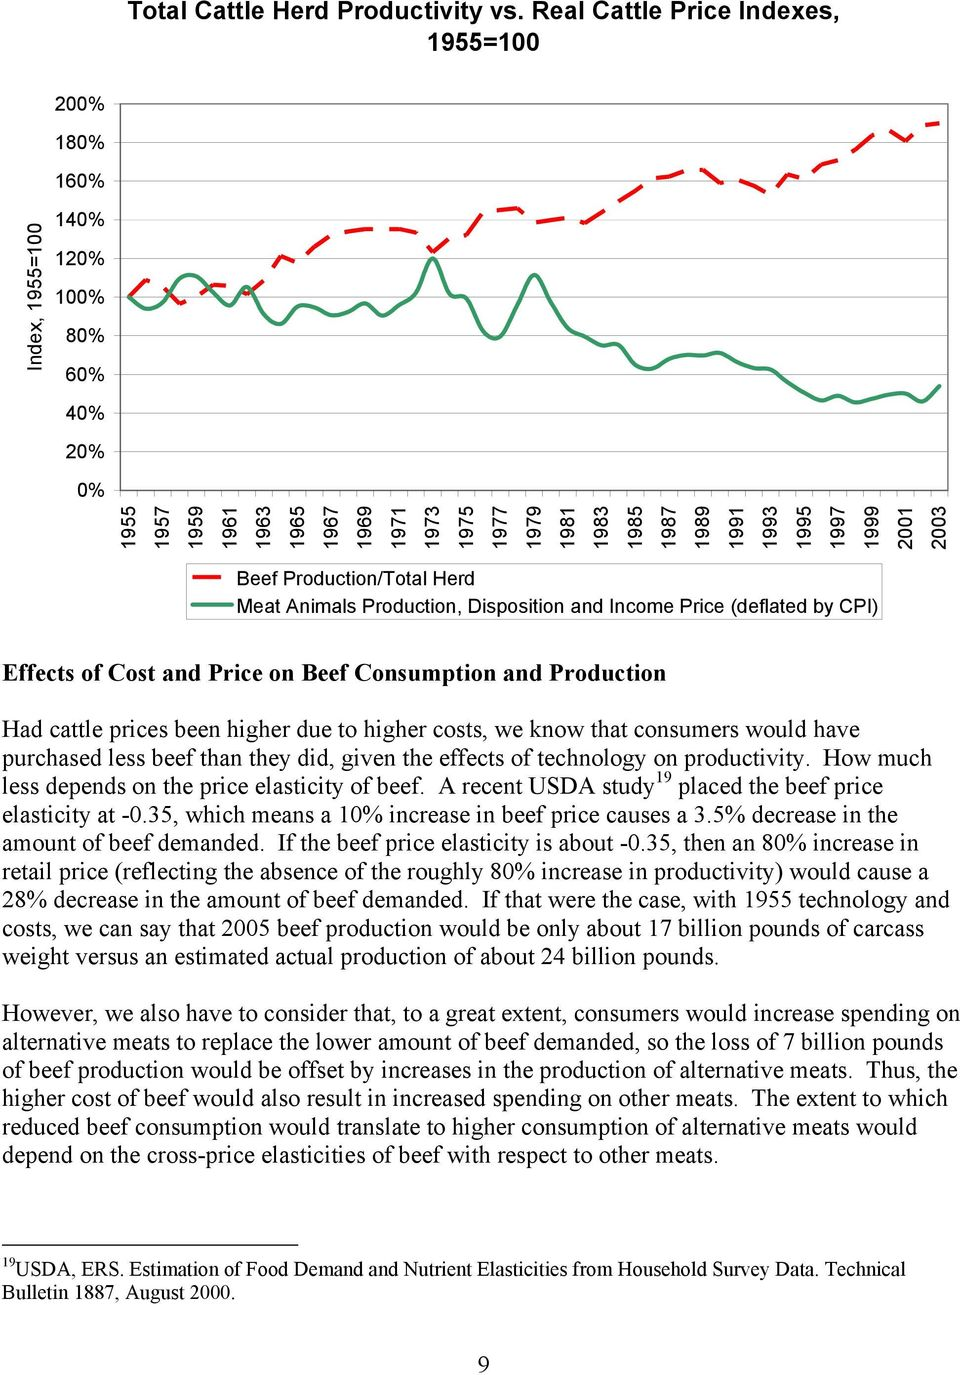 1993 1995 1997 1999 2001 2003 Beef Production/Total Herd Meat Animals Production, Disposition and Income Price (deflated by CPI) Effects of Cost and Price on Beef Consumption and Production Had